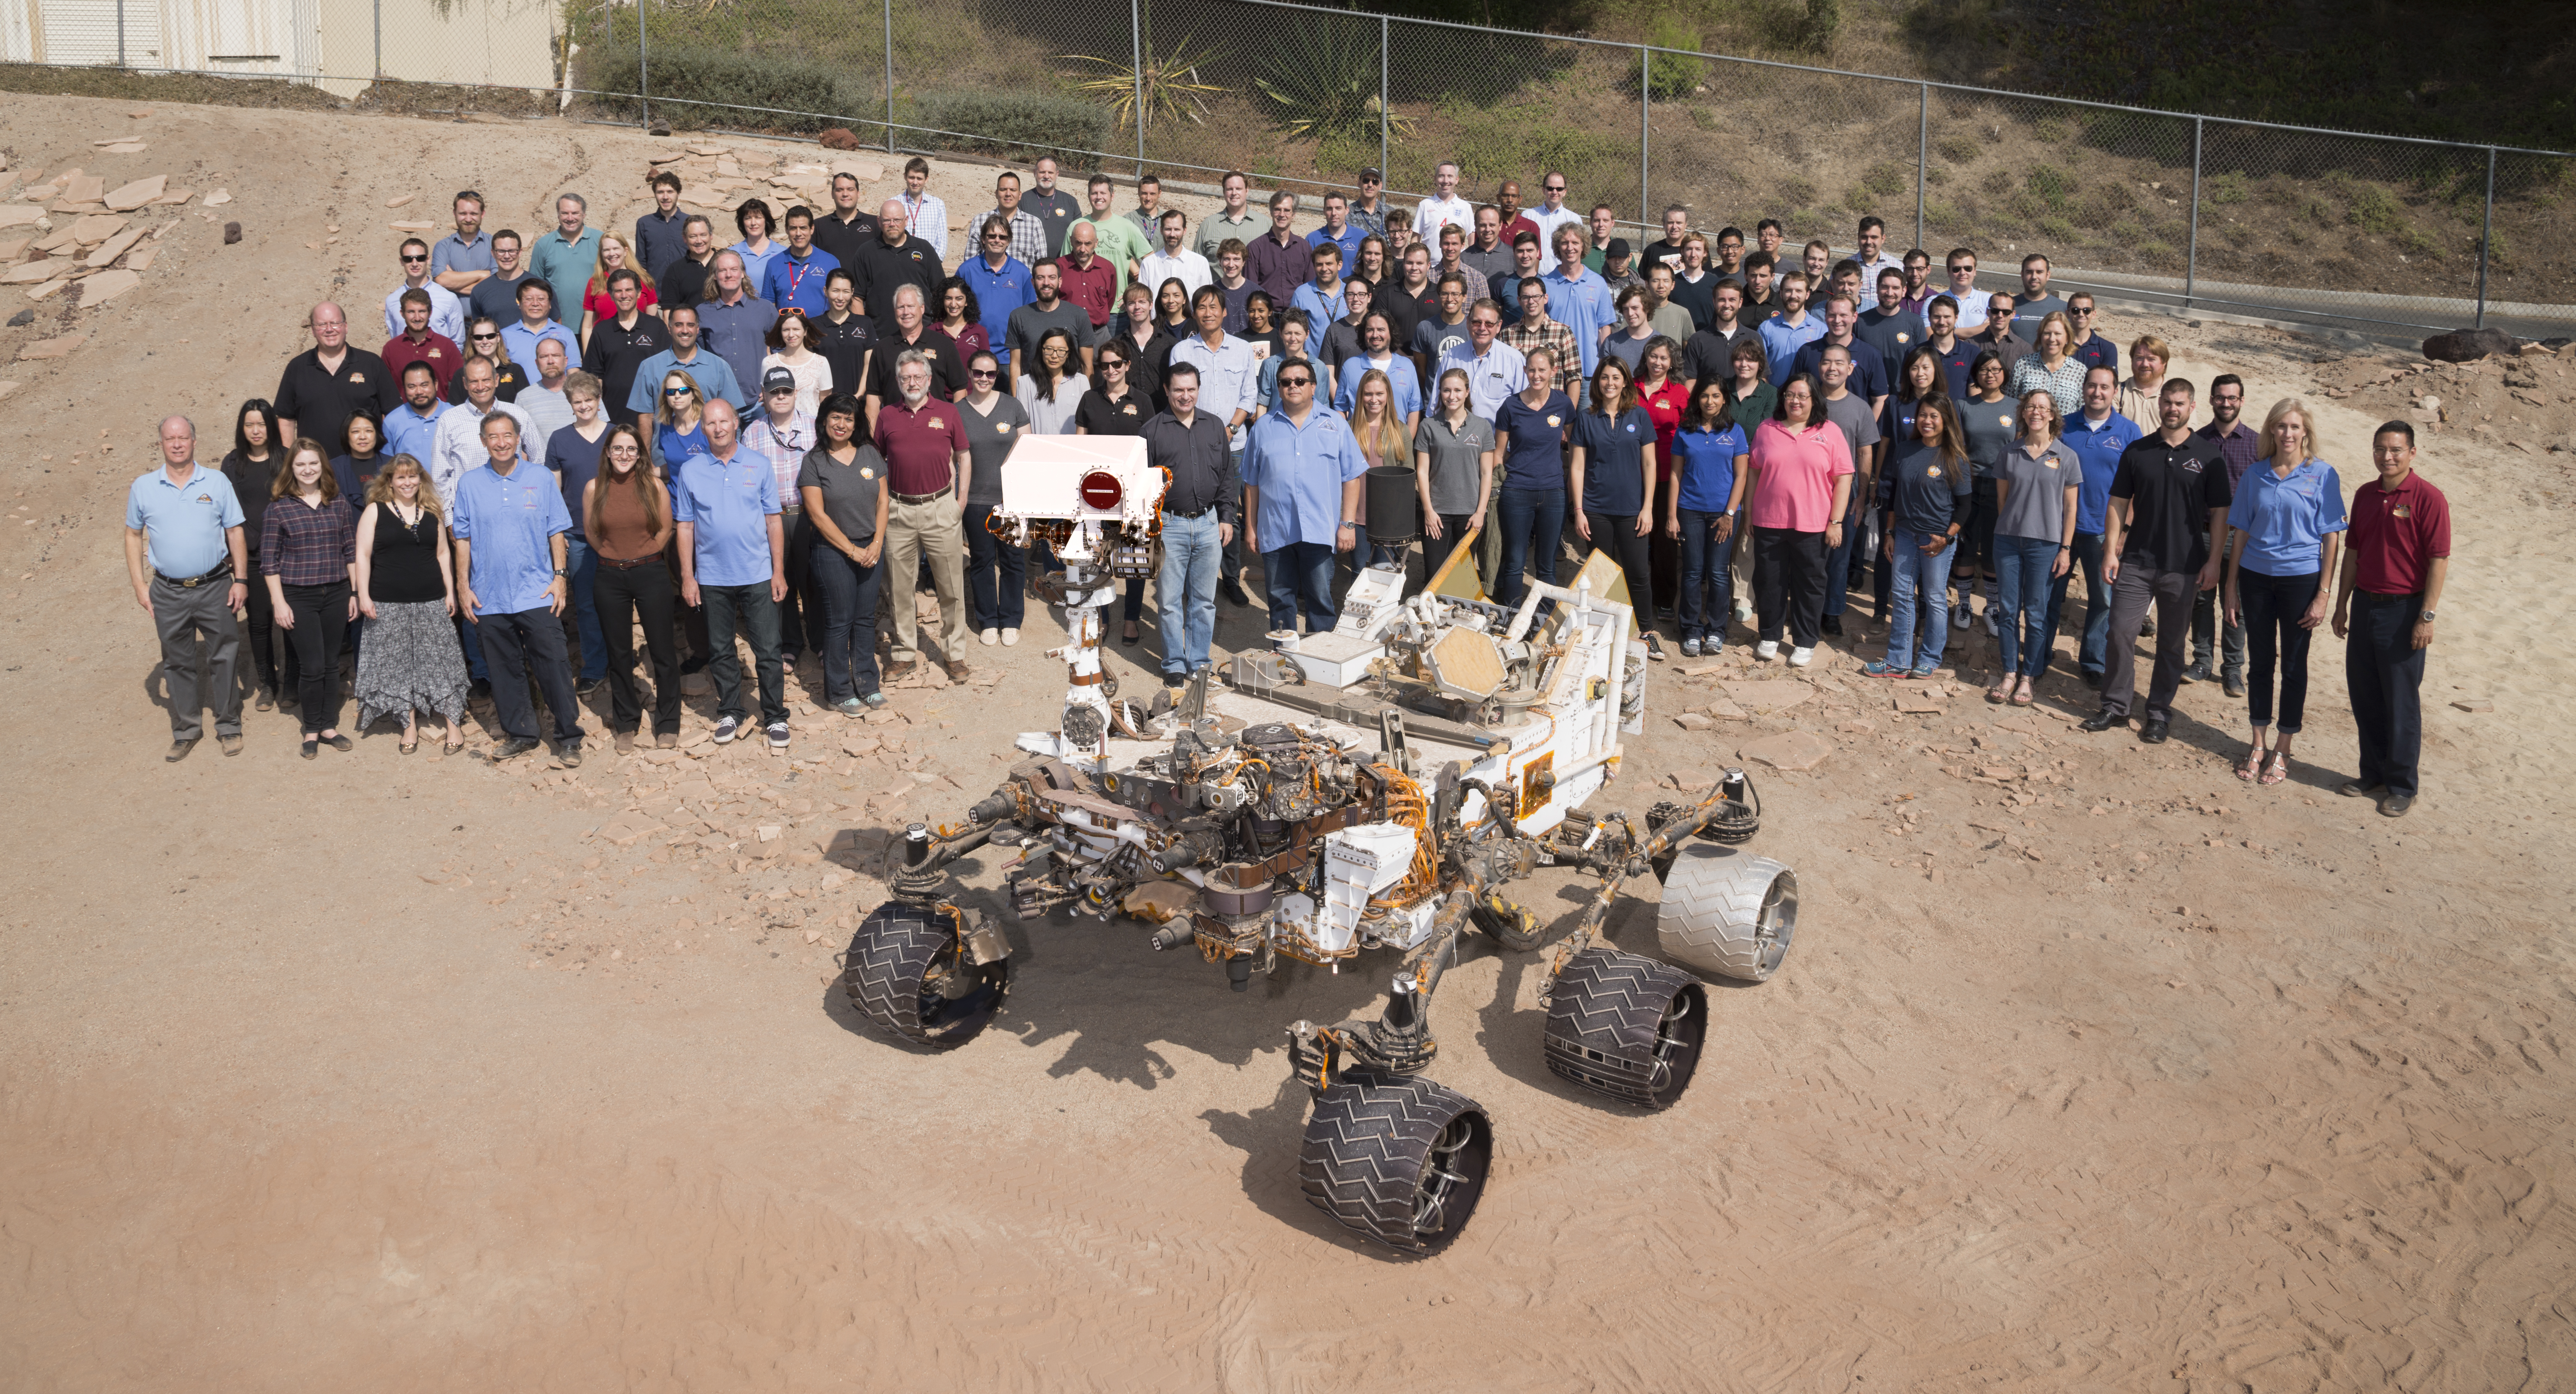 "Many members of NASA's Mars Science Laboratory Project, which operates the Curiosity rover on Mars, gathered for this 2016 team photo with a test rover in the ""Mars Yard"" at NASA's Jet Propulsion Laboratory, Pasadena, California."